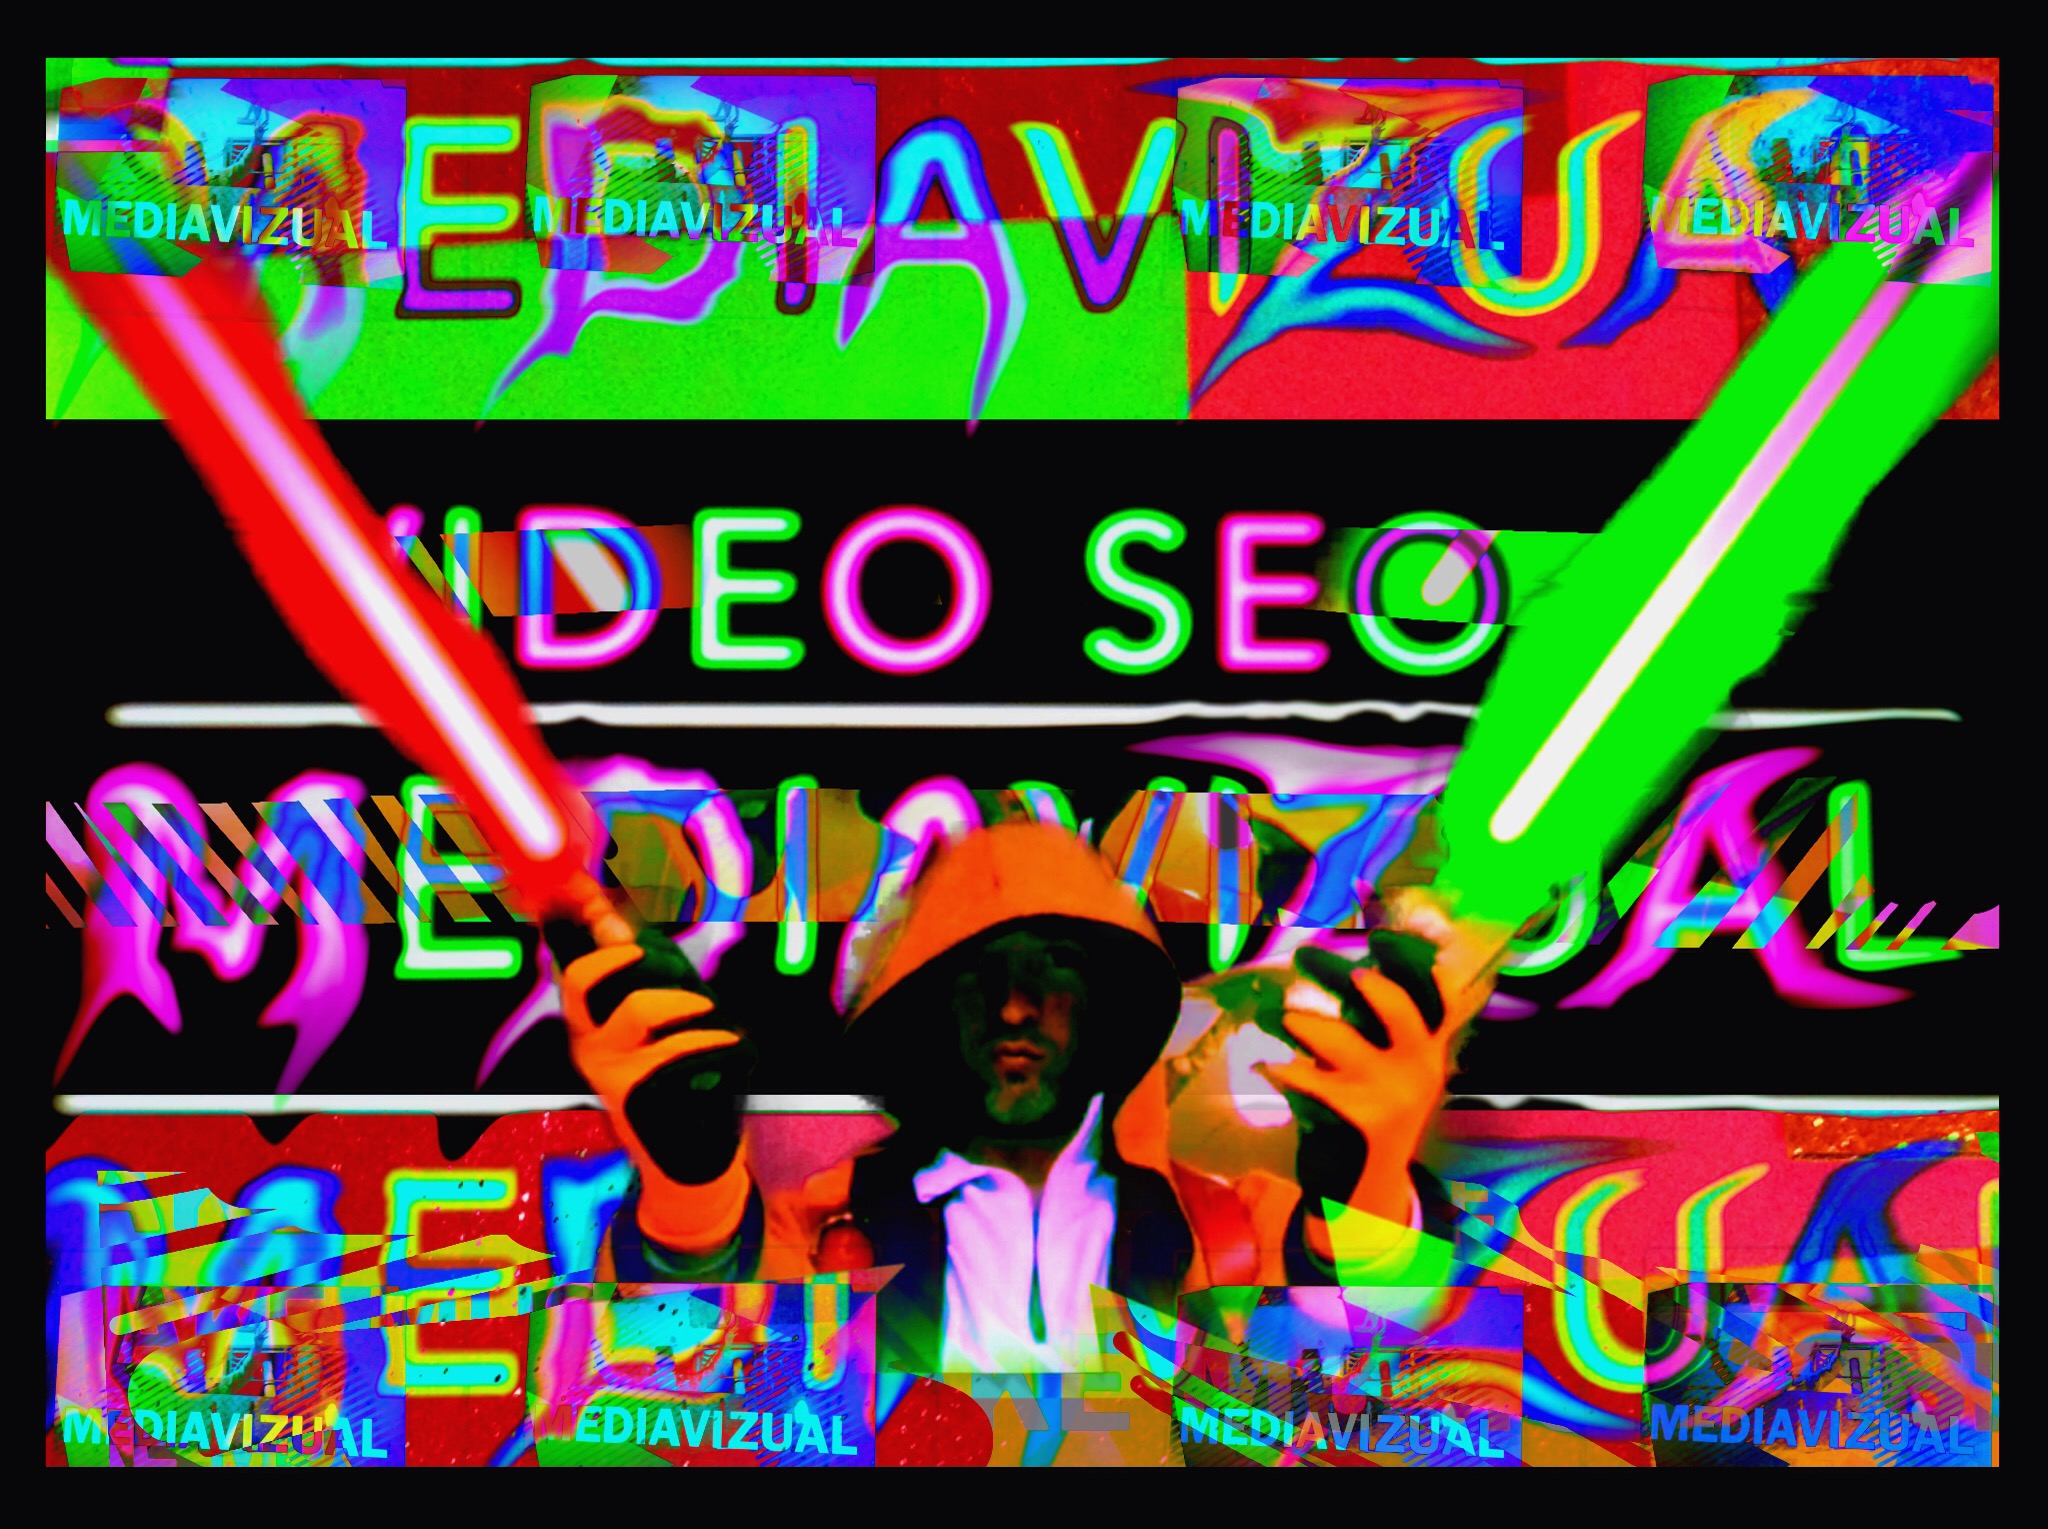 ranknig videos on the first page of Google and YouTUbe, and using the strength of that video ranking and engineering, to push your webpage to the top of google,.